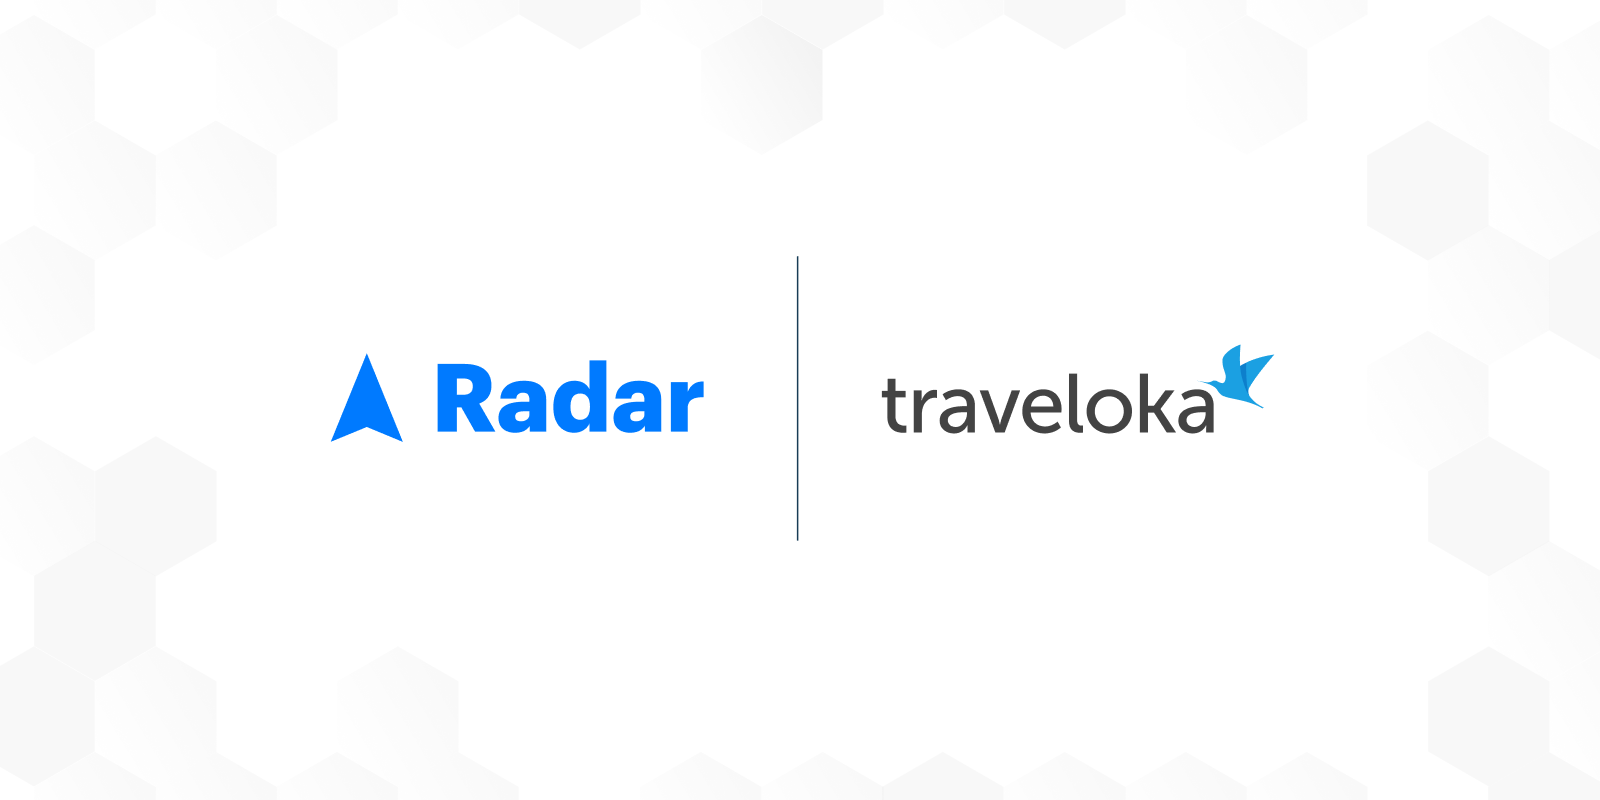 radar-traveloka-logos